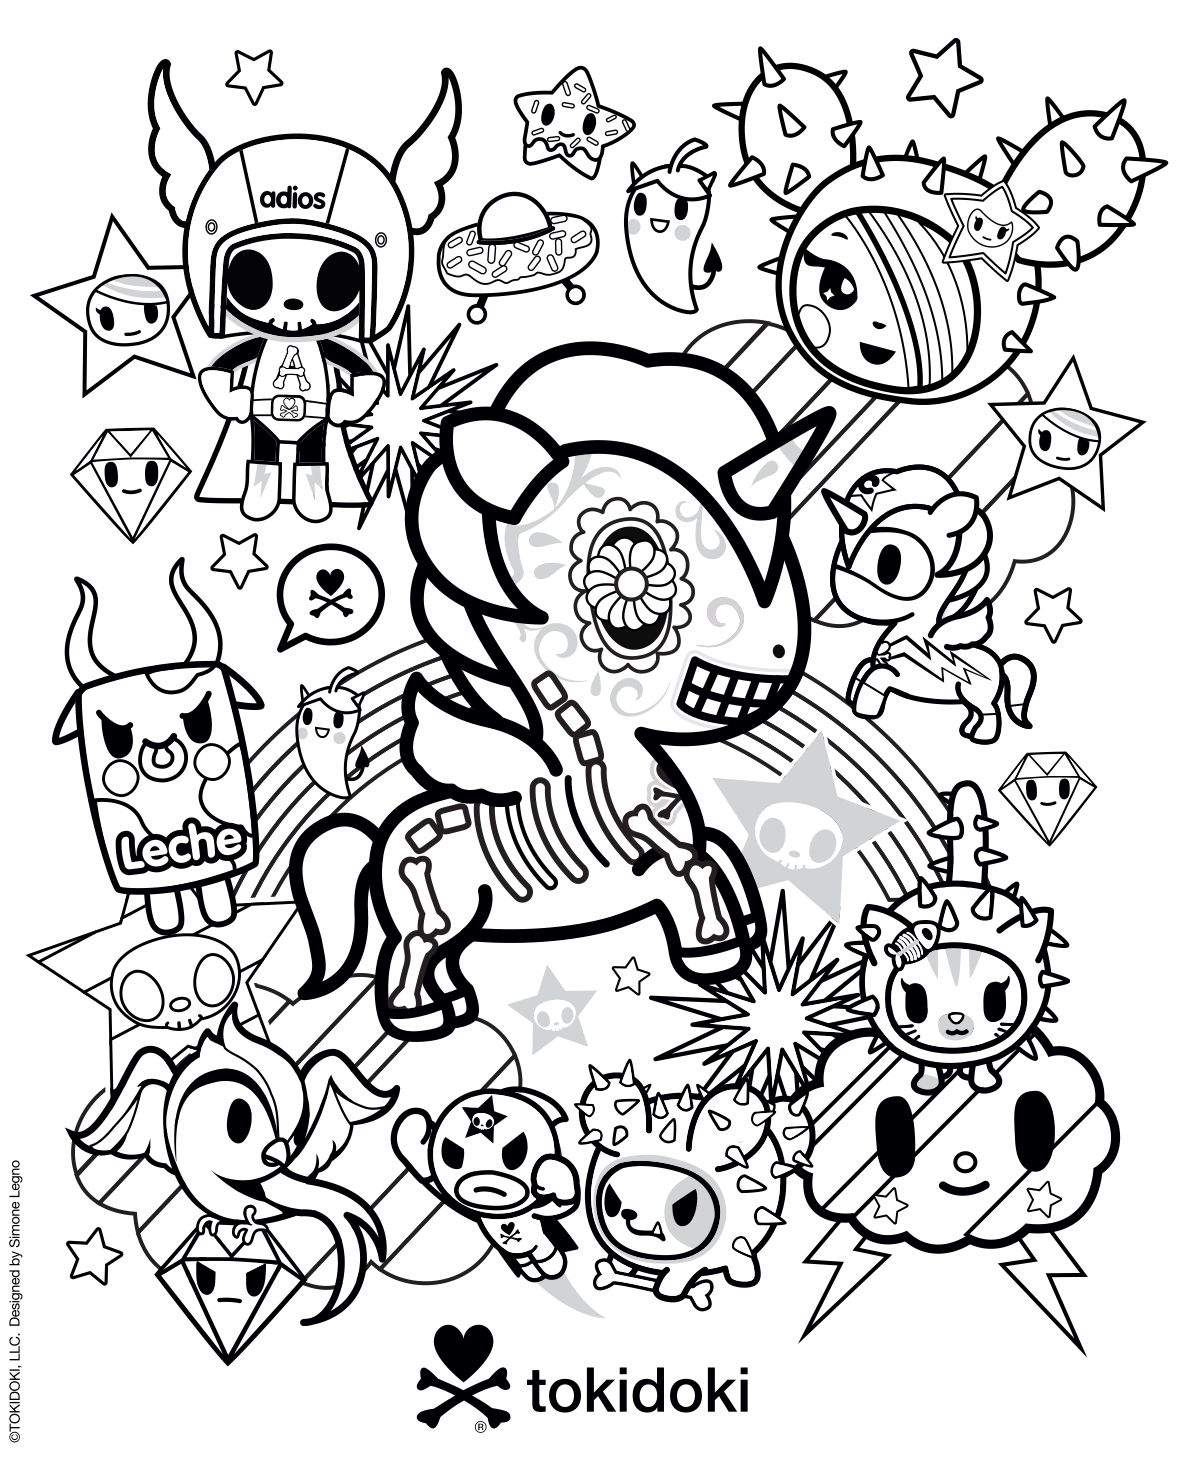 Tokidoki Colouring Page Coloring Pages Kitty Coloring Coloring